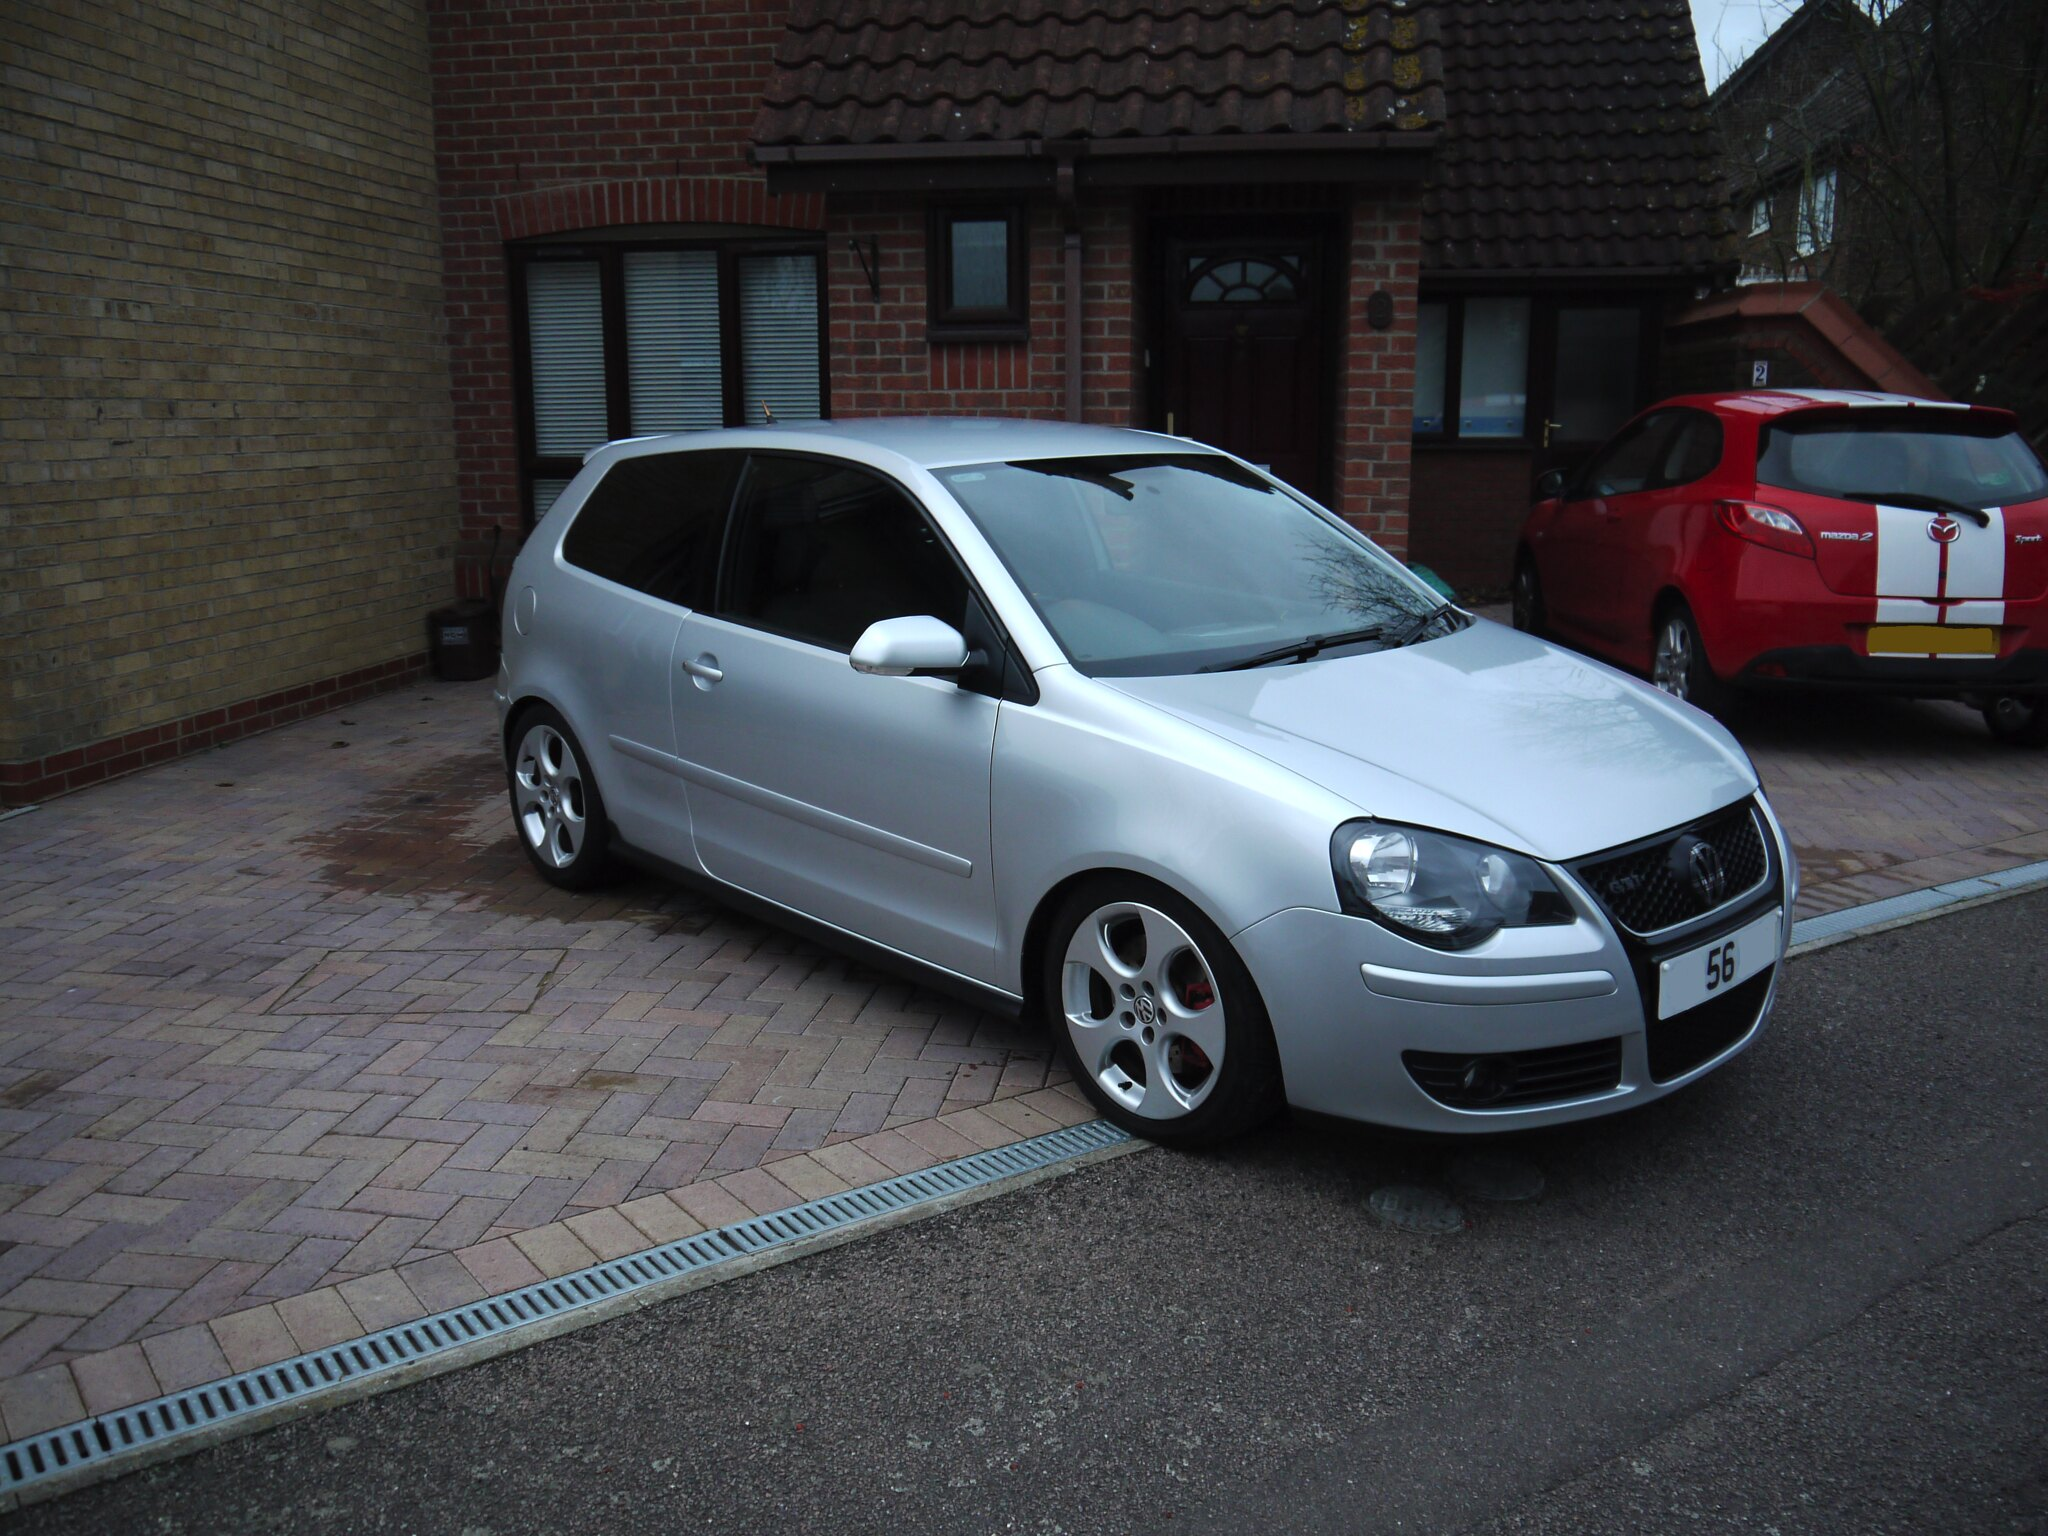 2007 polo 9n3 1 8t gti 3dr silver for sale uk polos net. Black Bedroom Furniture Sets. Home Design Ideas